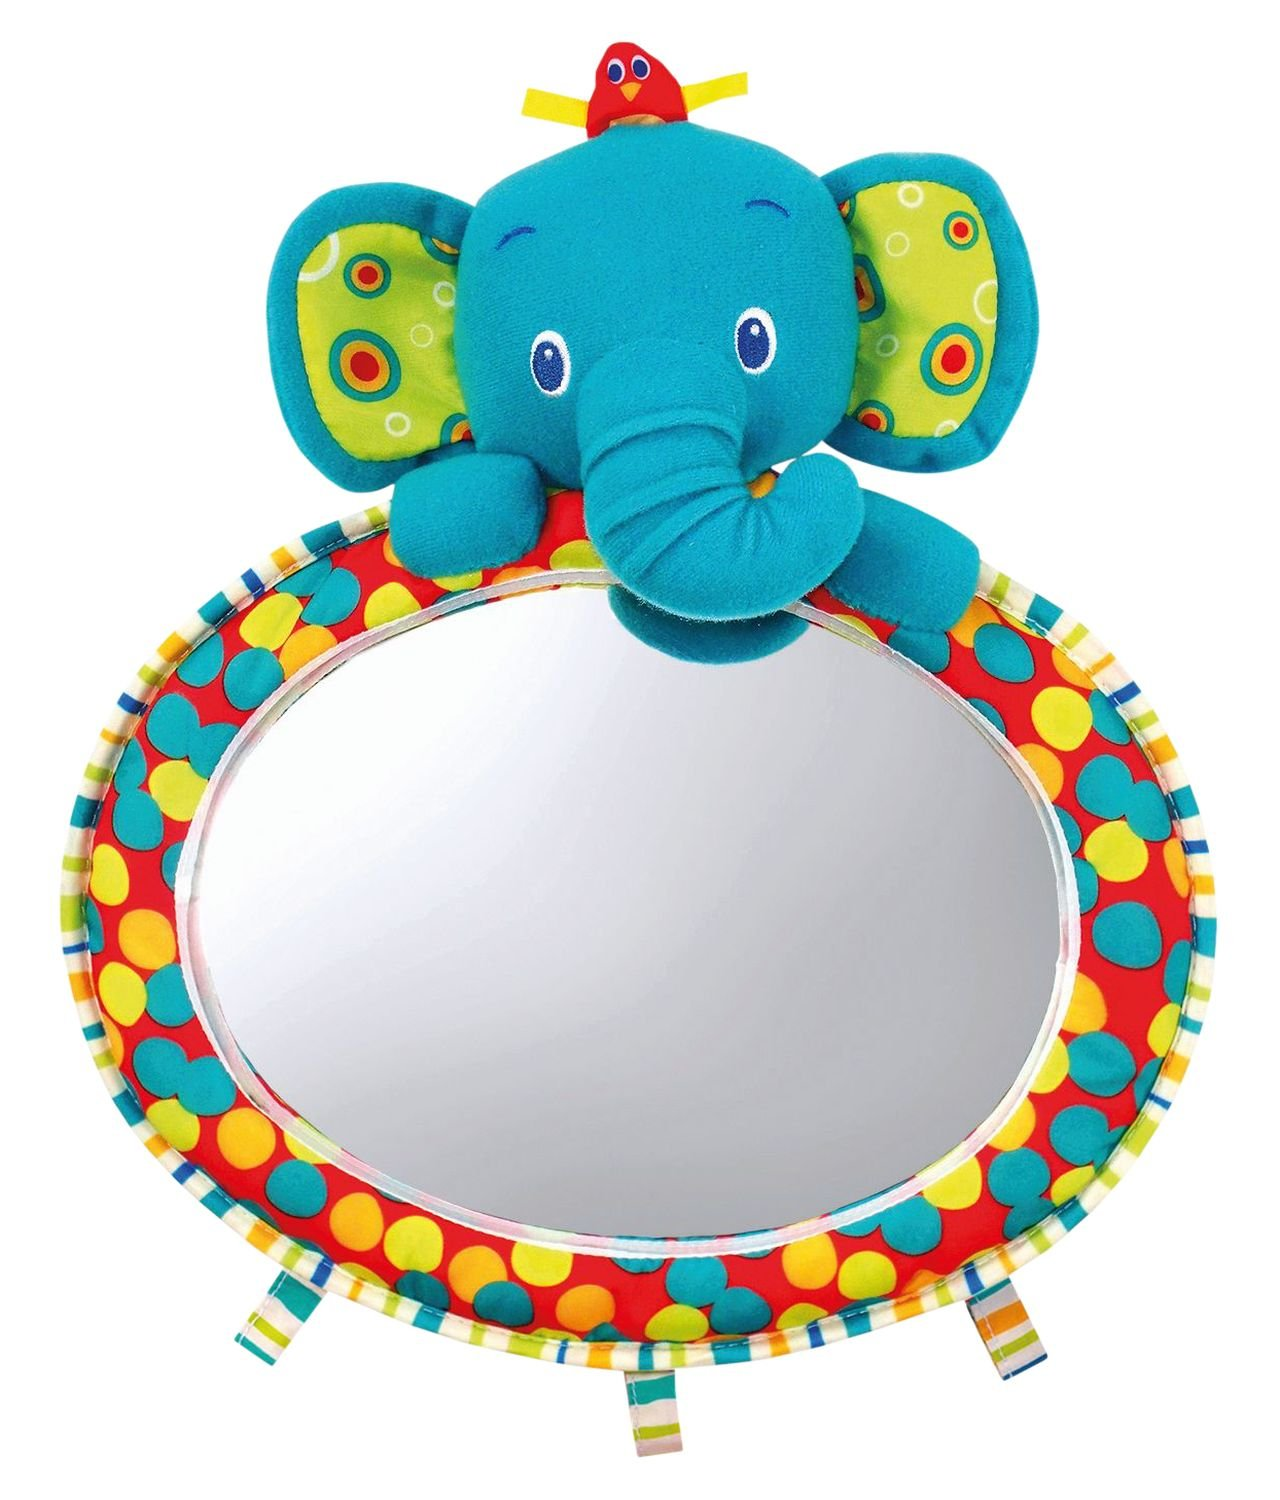 Bright Starts See and Play Auto Mirror Kidsii 8817